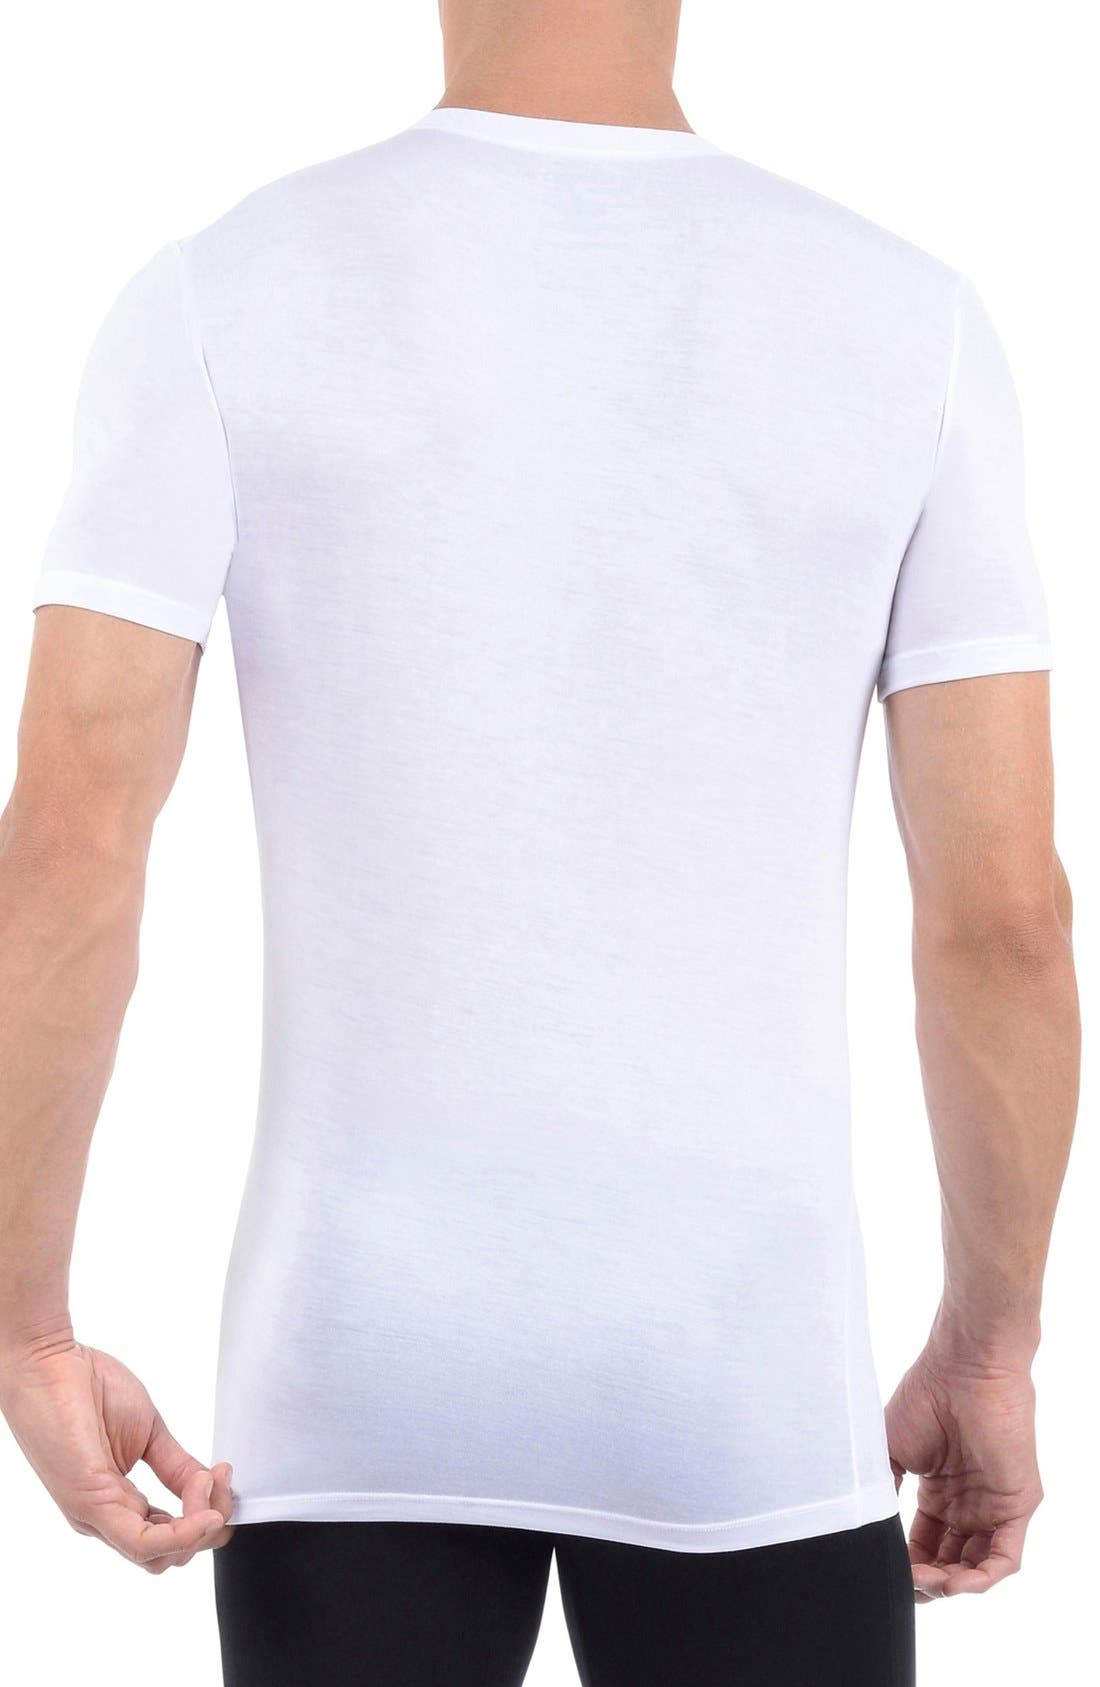 Second Skin High V-Neck Undershirt,                             Alternate thumbnail 2, color,                             WHITE